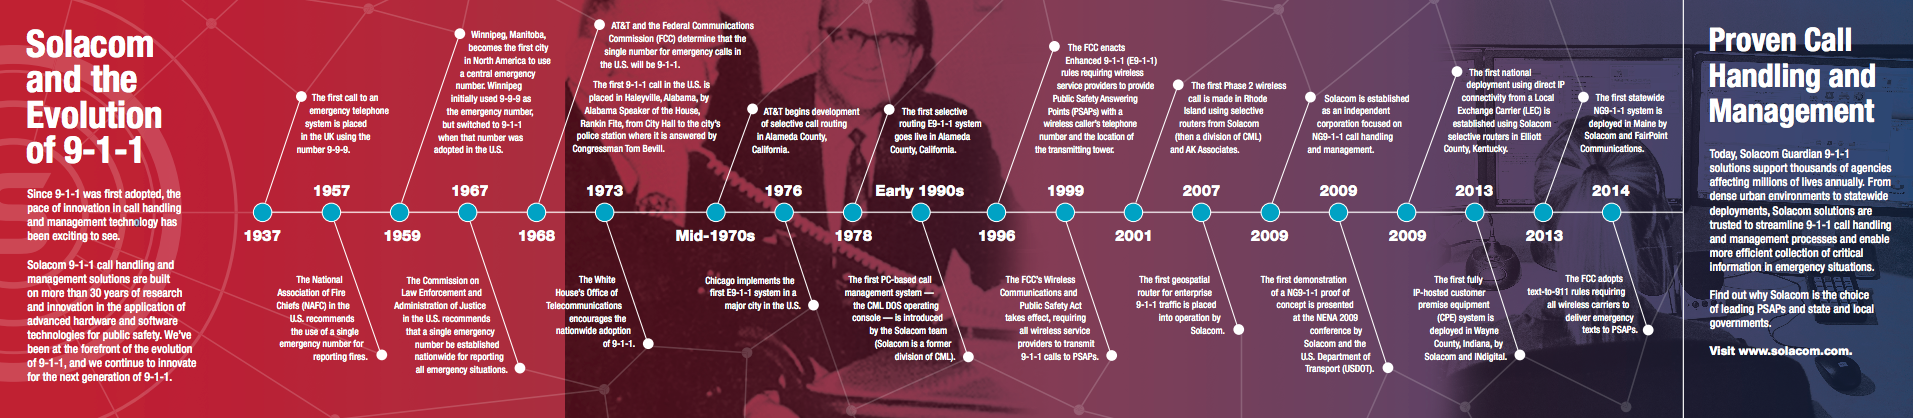 50th Anniversary of 9-1-1 Infographic Thumbnail.png